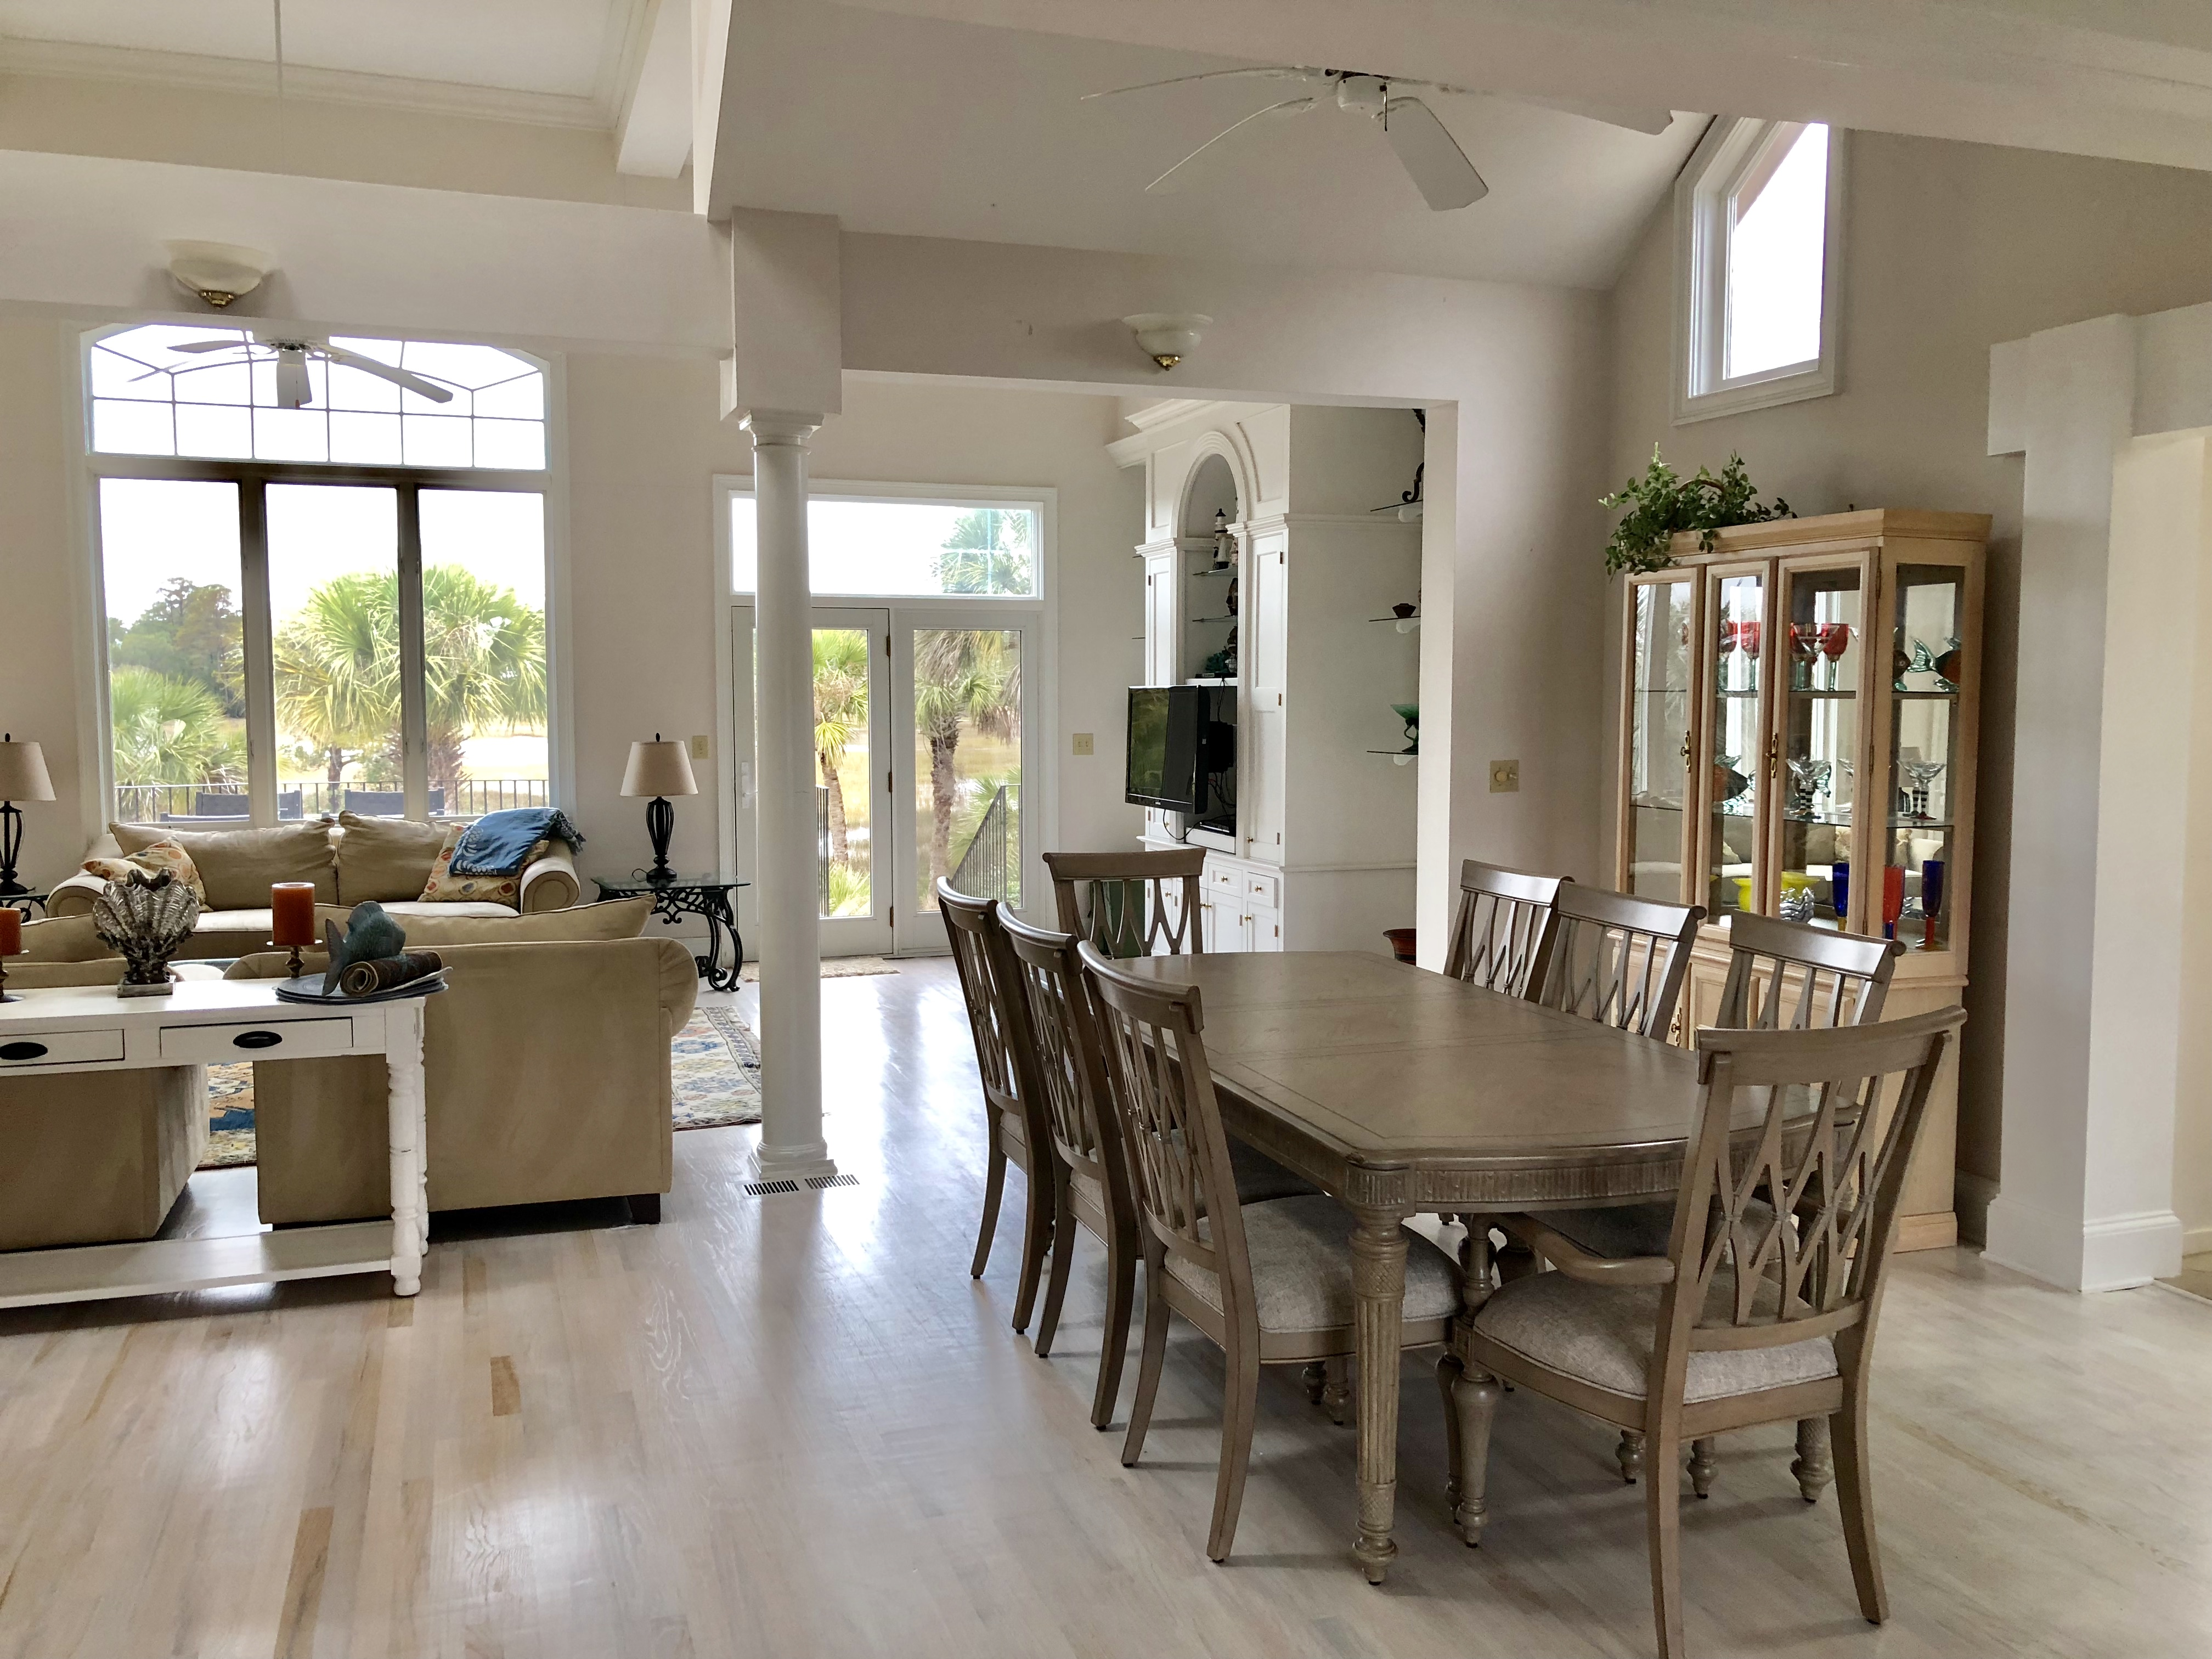 The open floor plan in the dining room and great room have vaulted ceilings with lots of natural light.